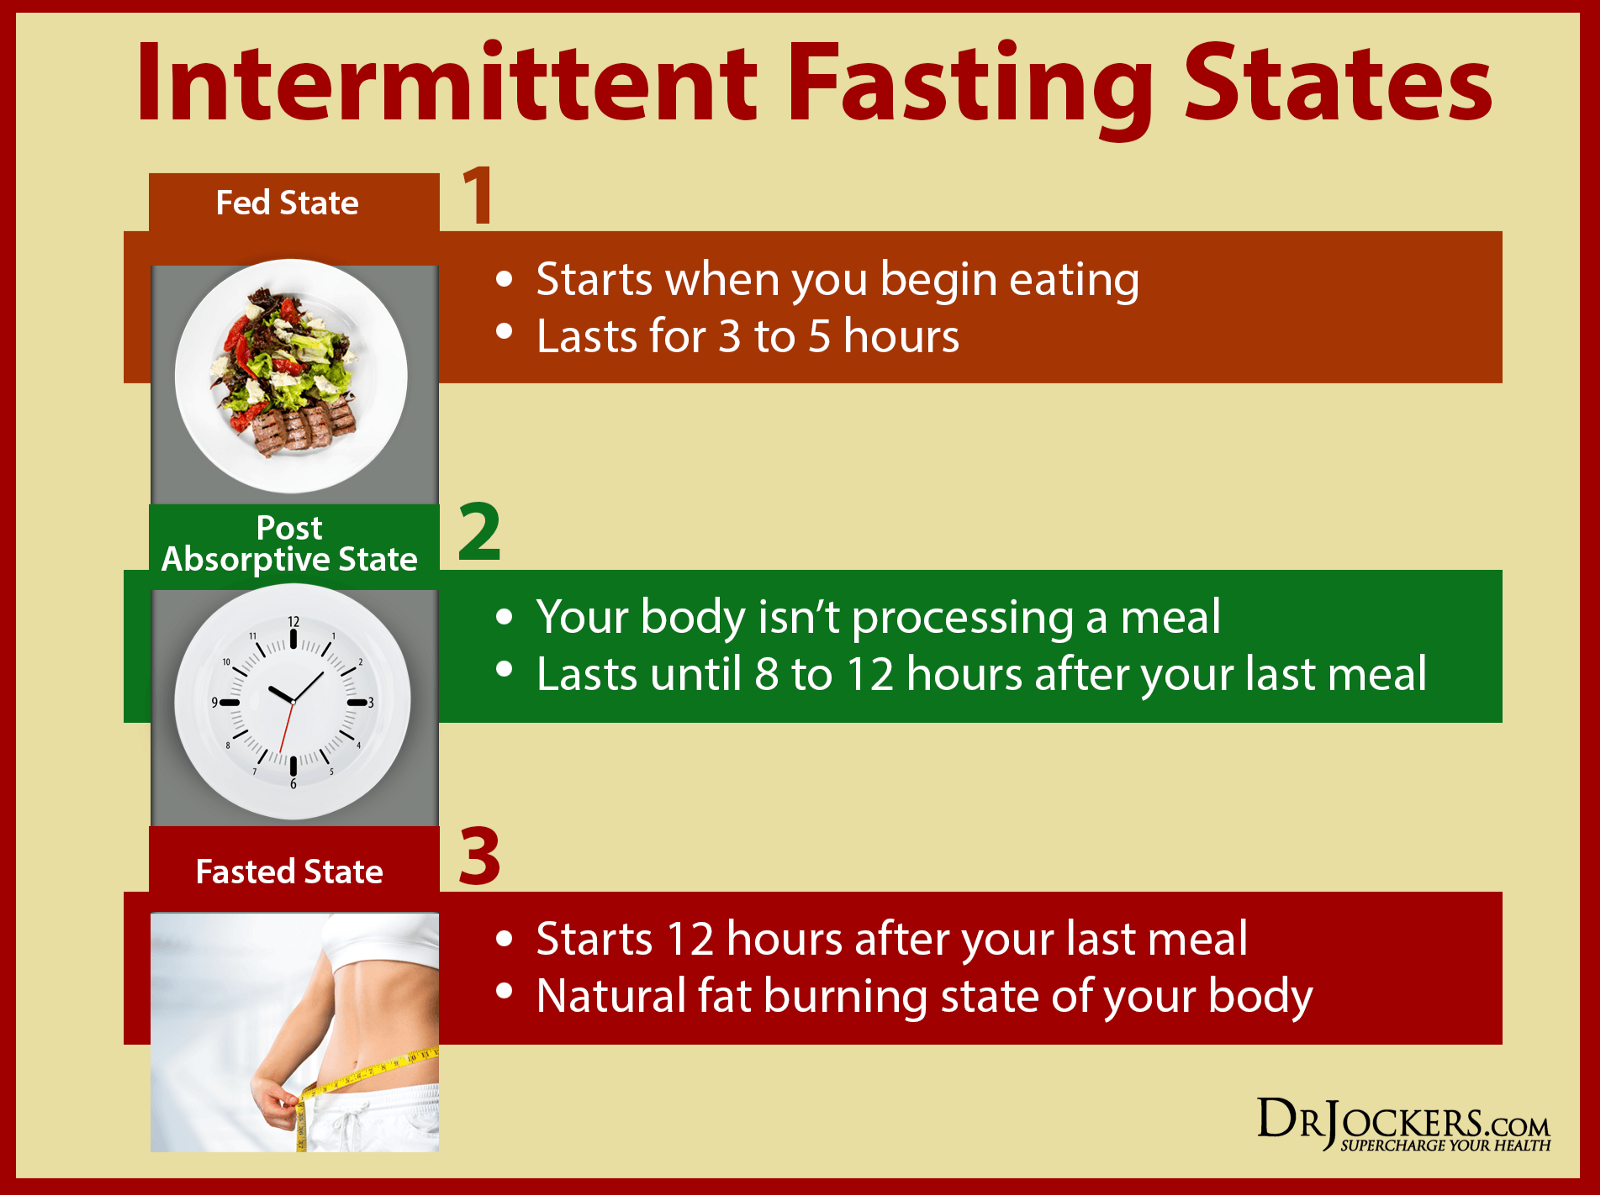 Foods To Eat While Intermittent Fasting